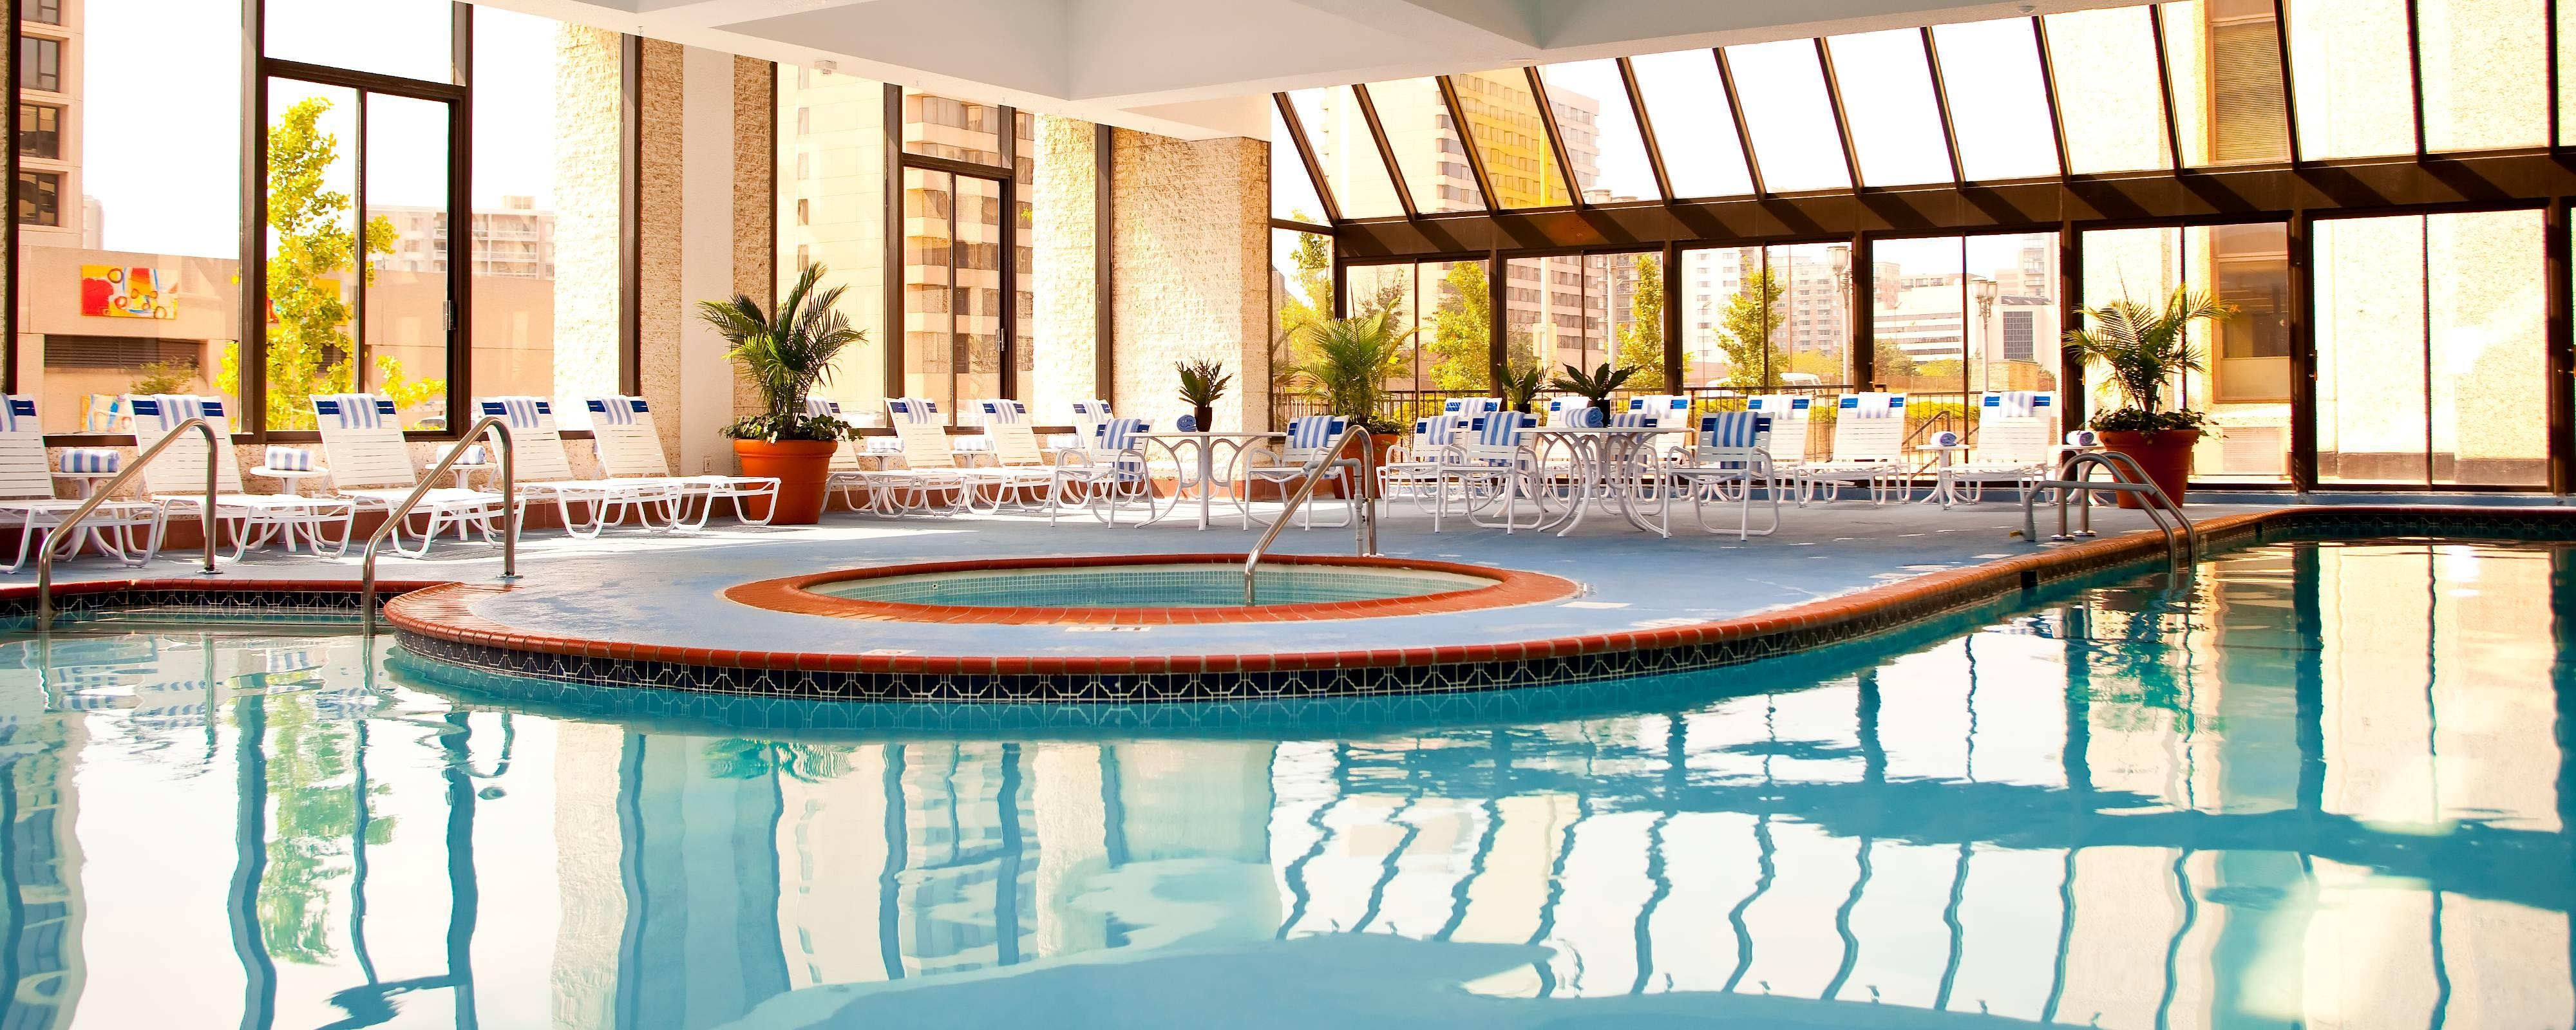 Piscine de l'hôtel Marriott de Crystal City